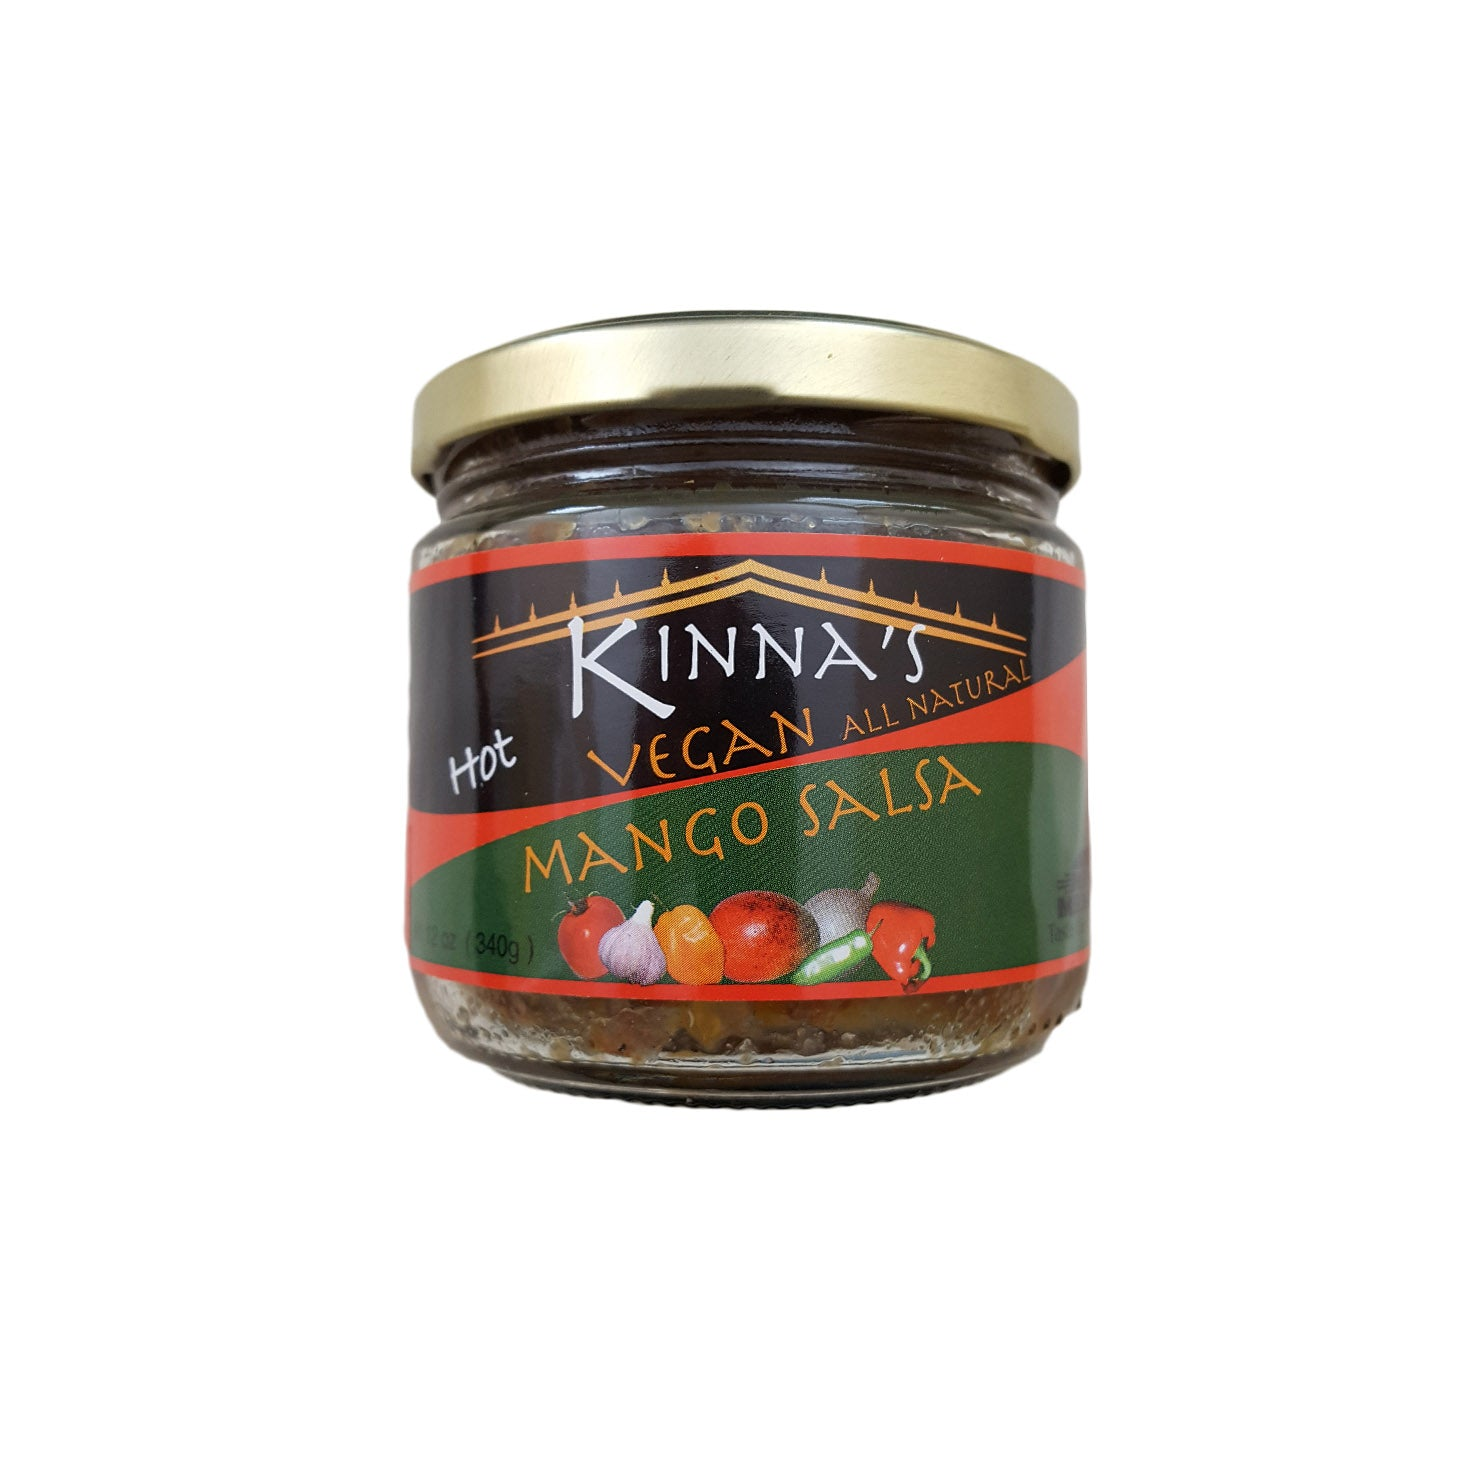 Kinna's Vegan All Natural Mango Salsa - Hot